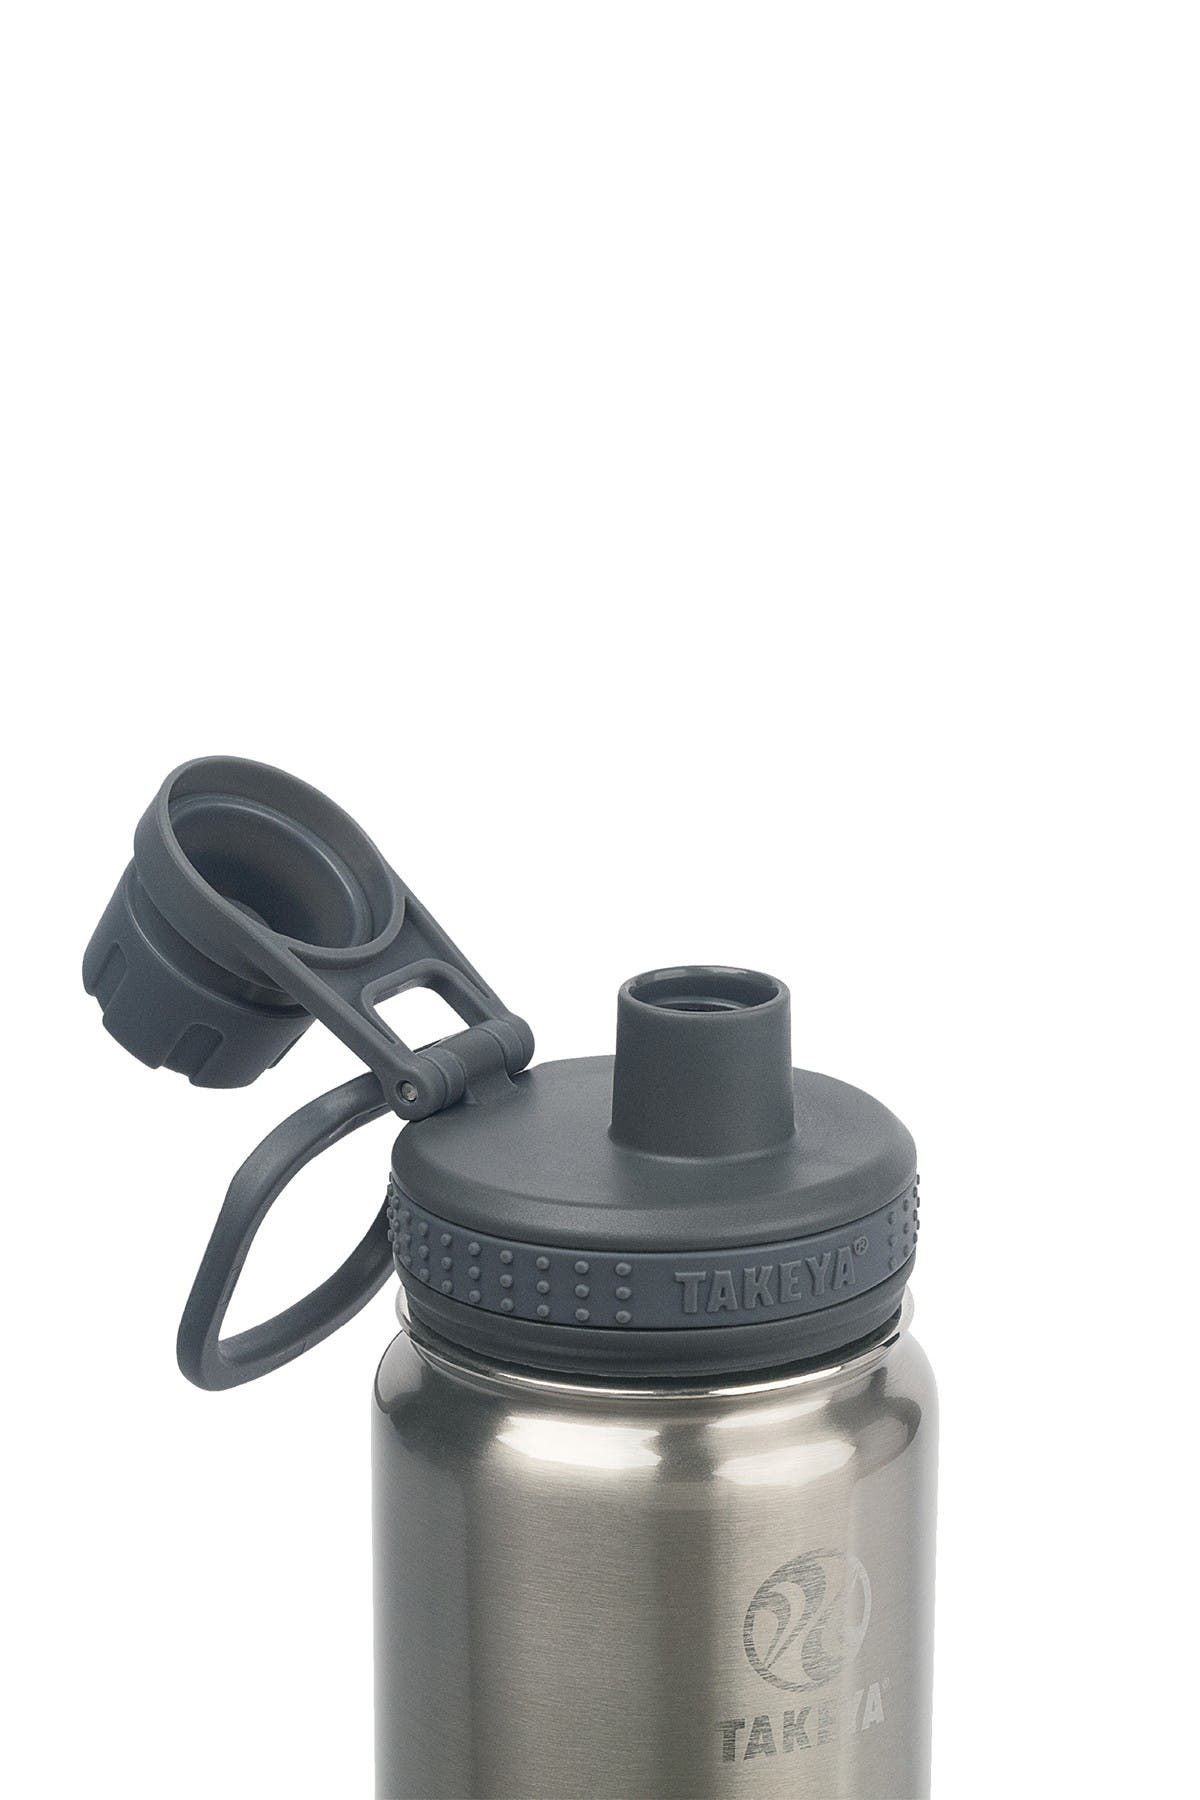 Image of Takeya Actives 18 oz. Spout Bottle - Steel